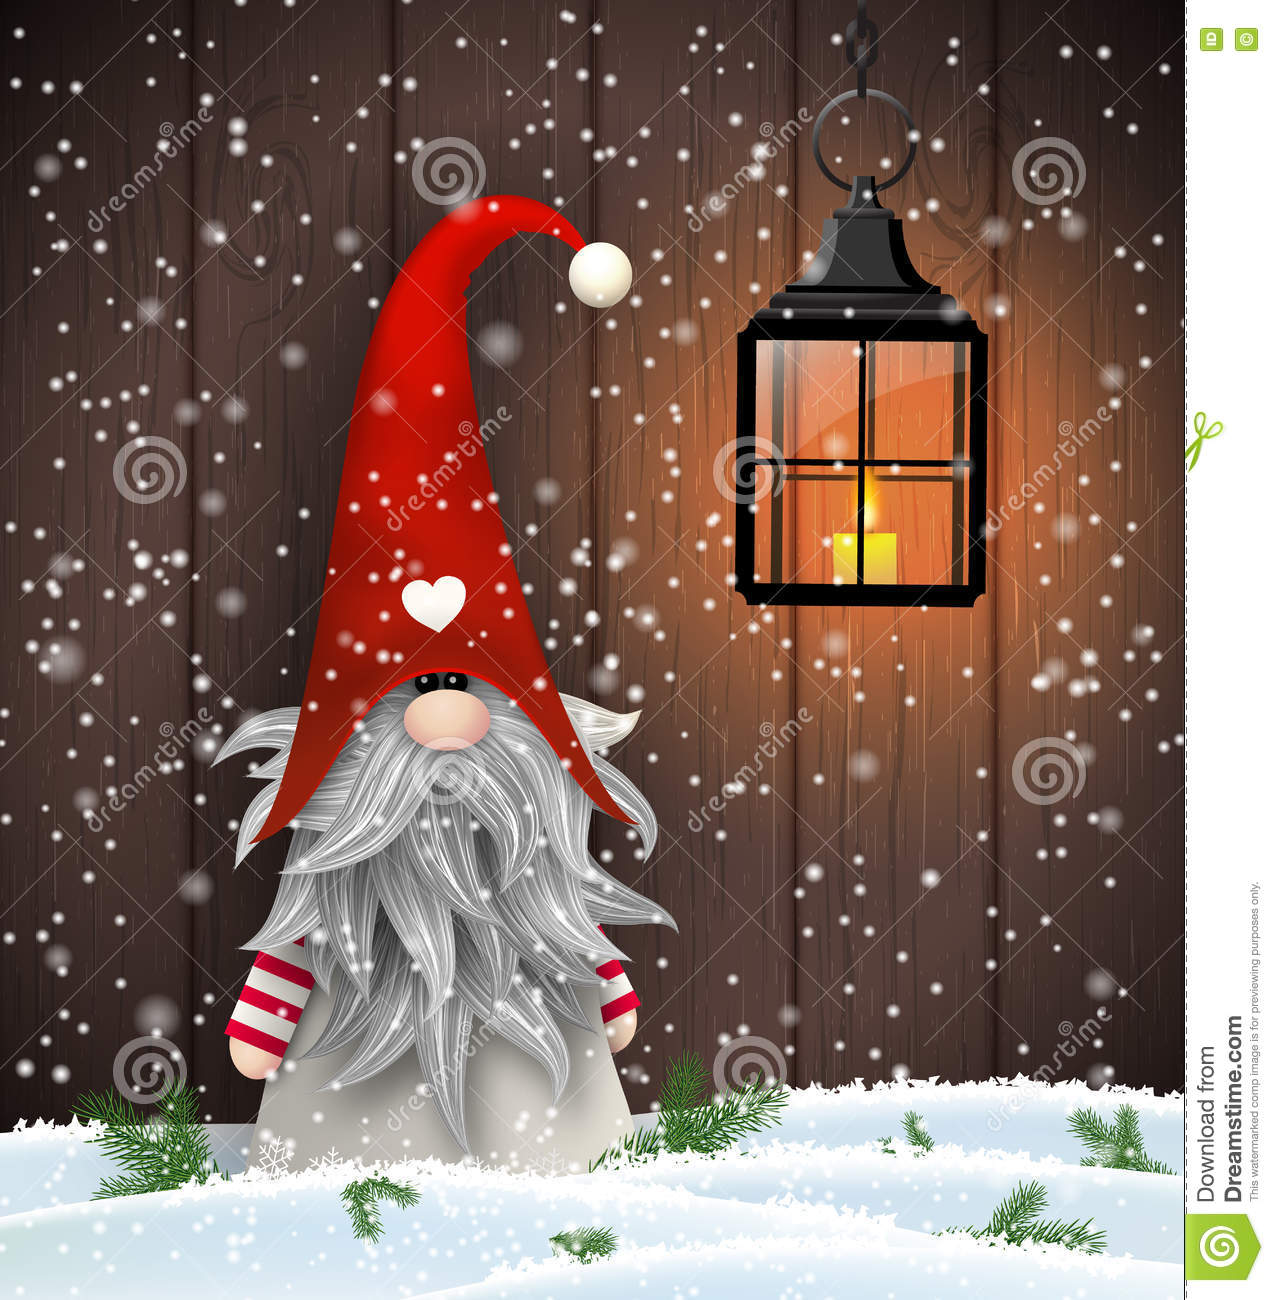 Gift Wallpaper Hd Scandinavian Christmas Traditional Gnome Tomte